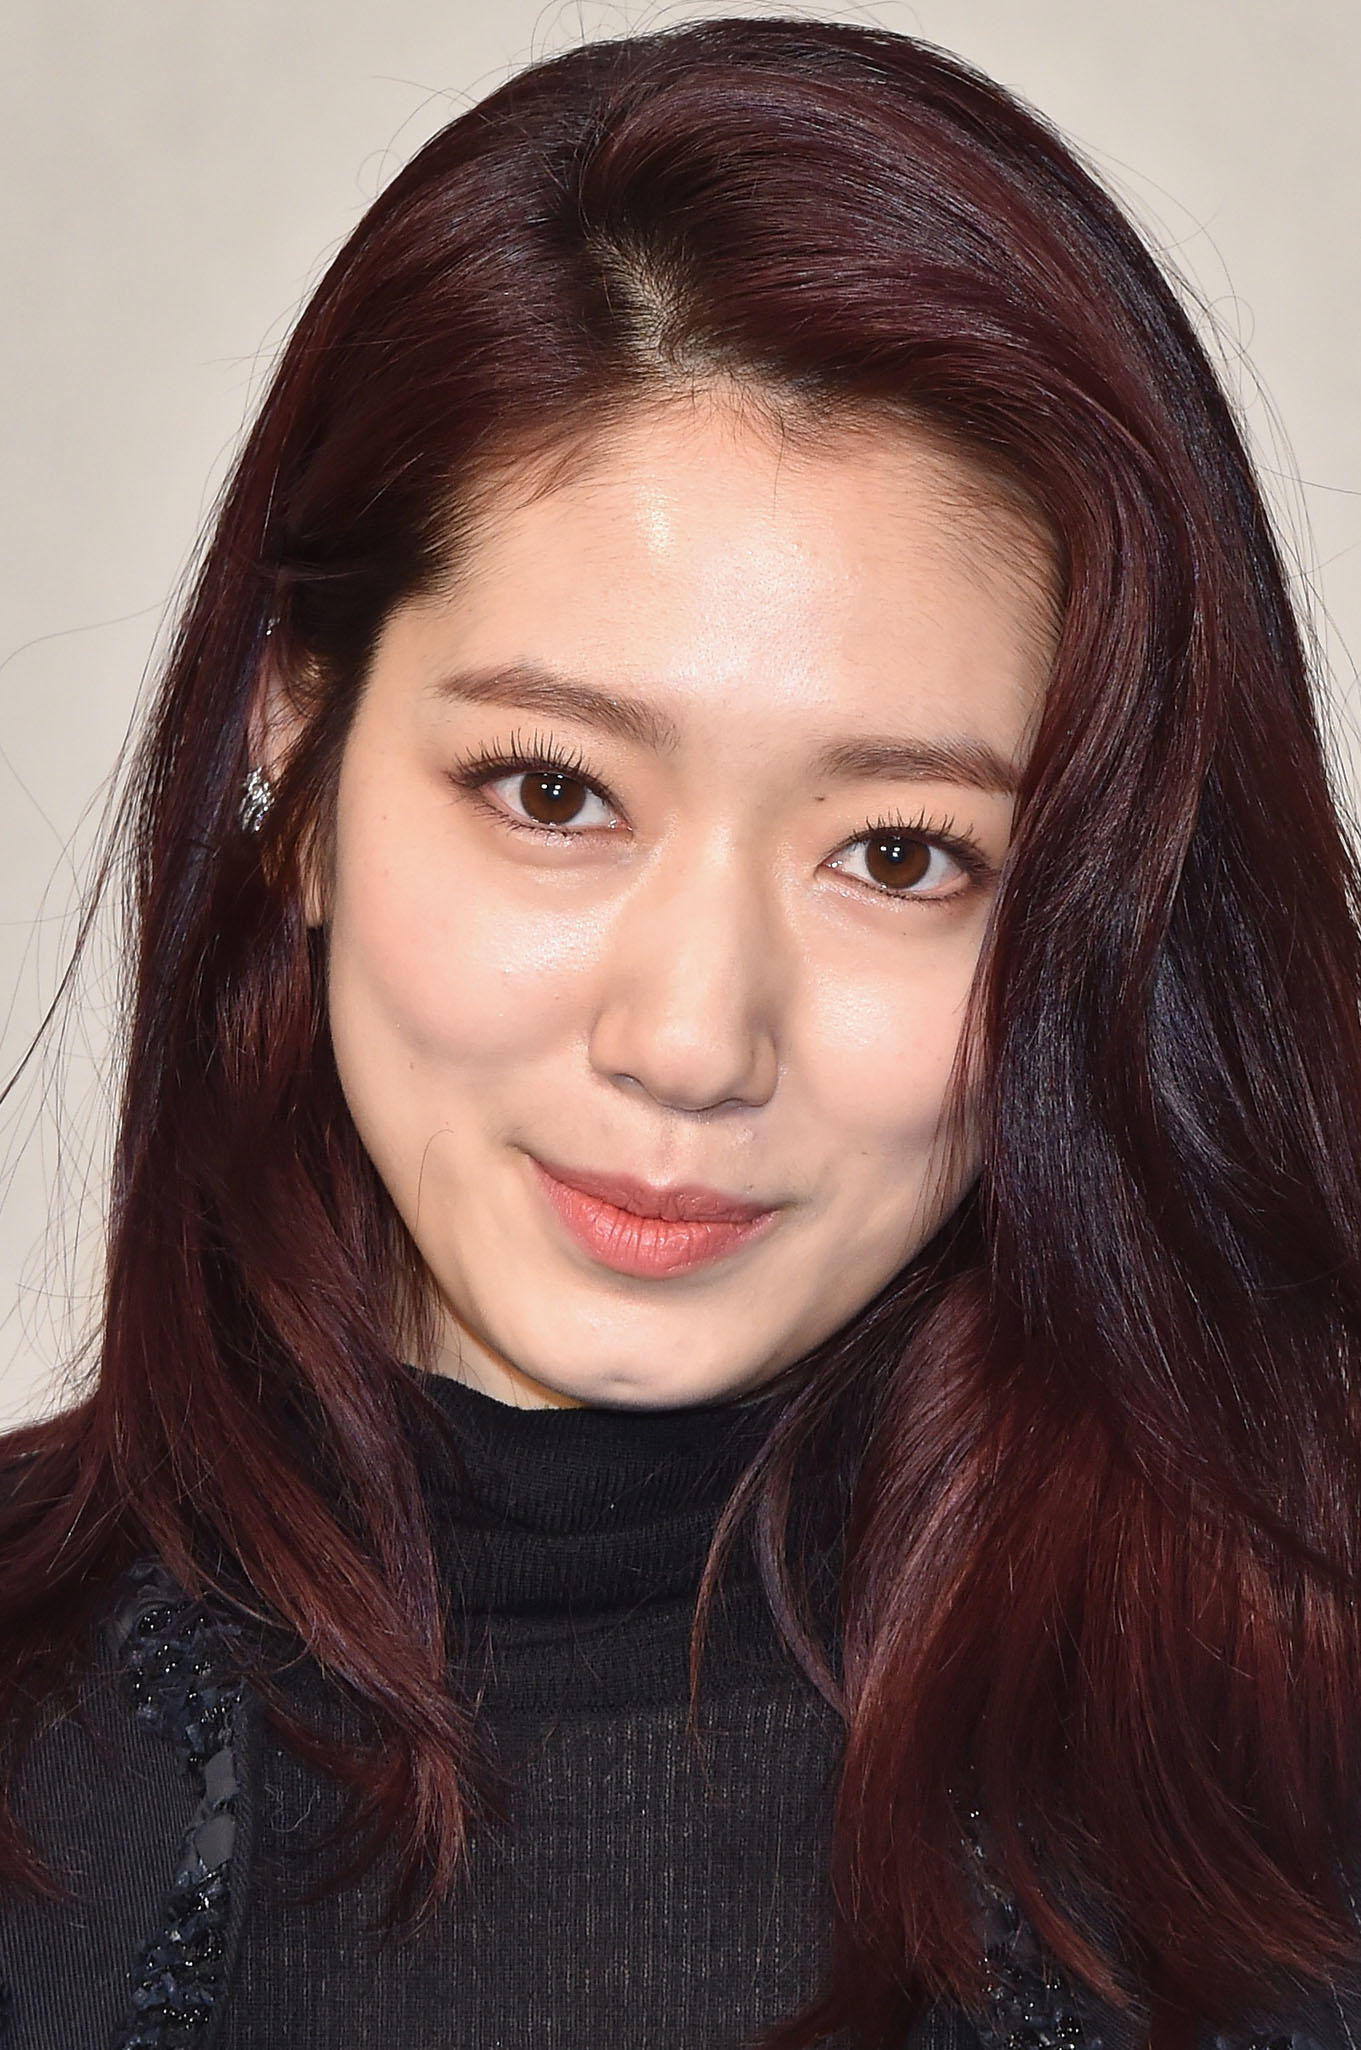 Park Shin-Hye Pictures and Photos | Fandango